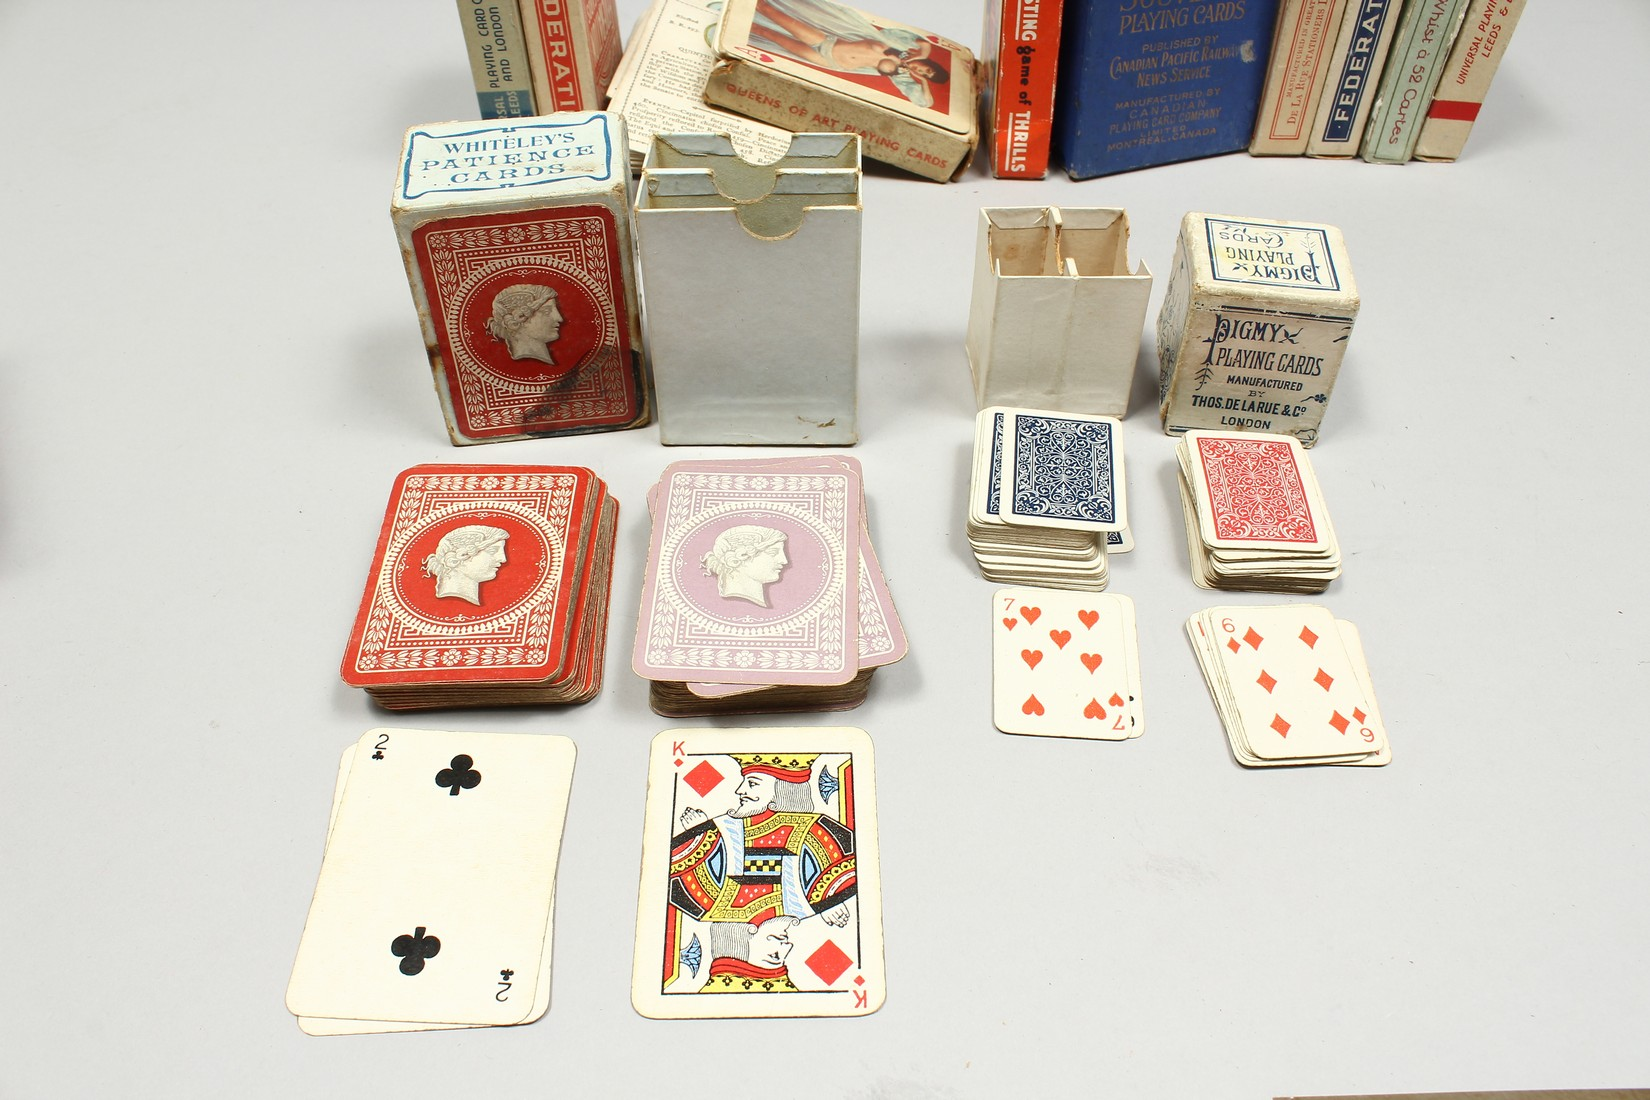 A COLLECTION OF VARIOUS PLAYING CARDS. - Image 9 of 16